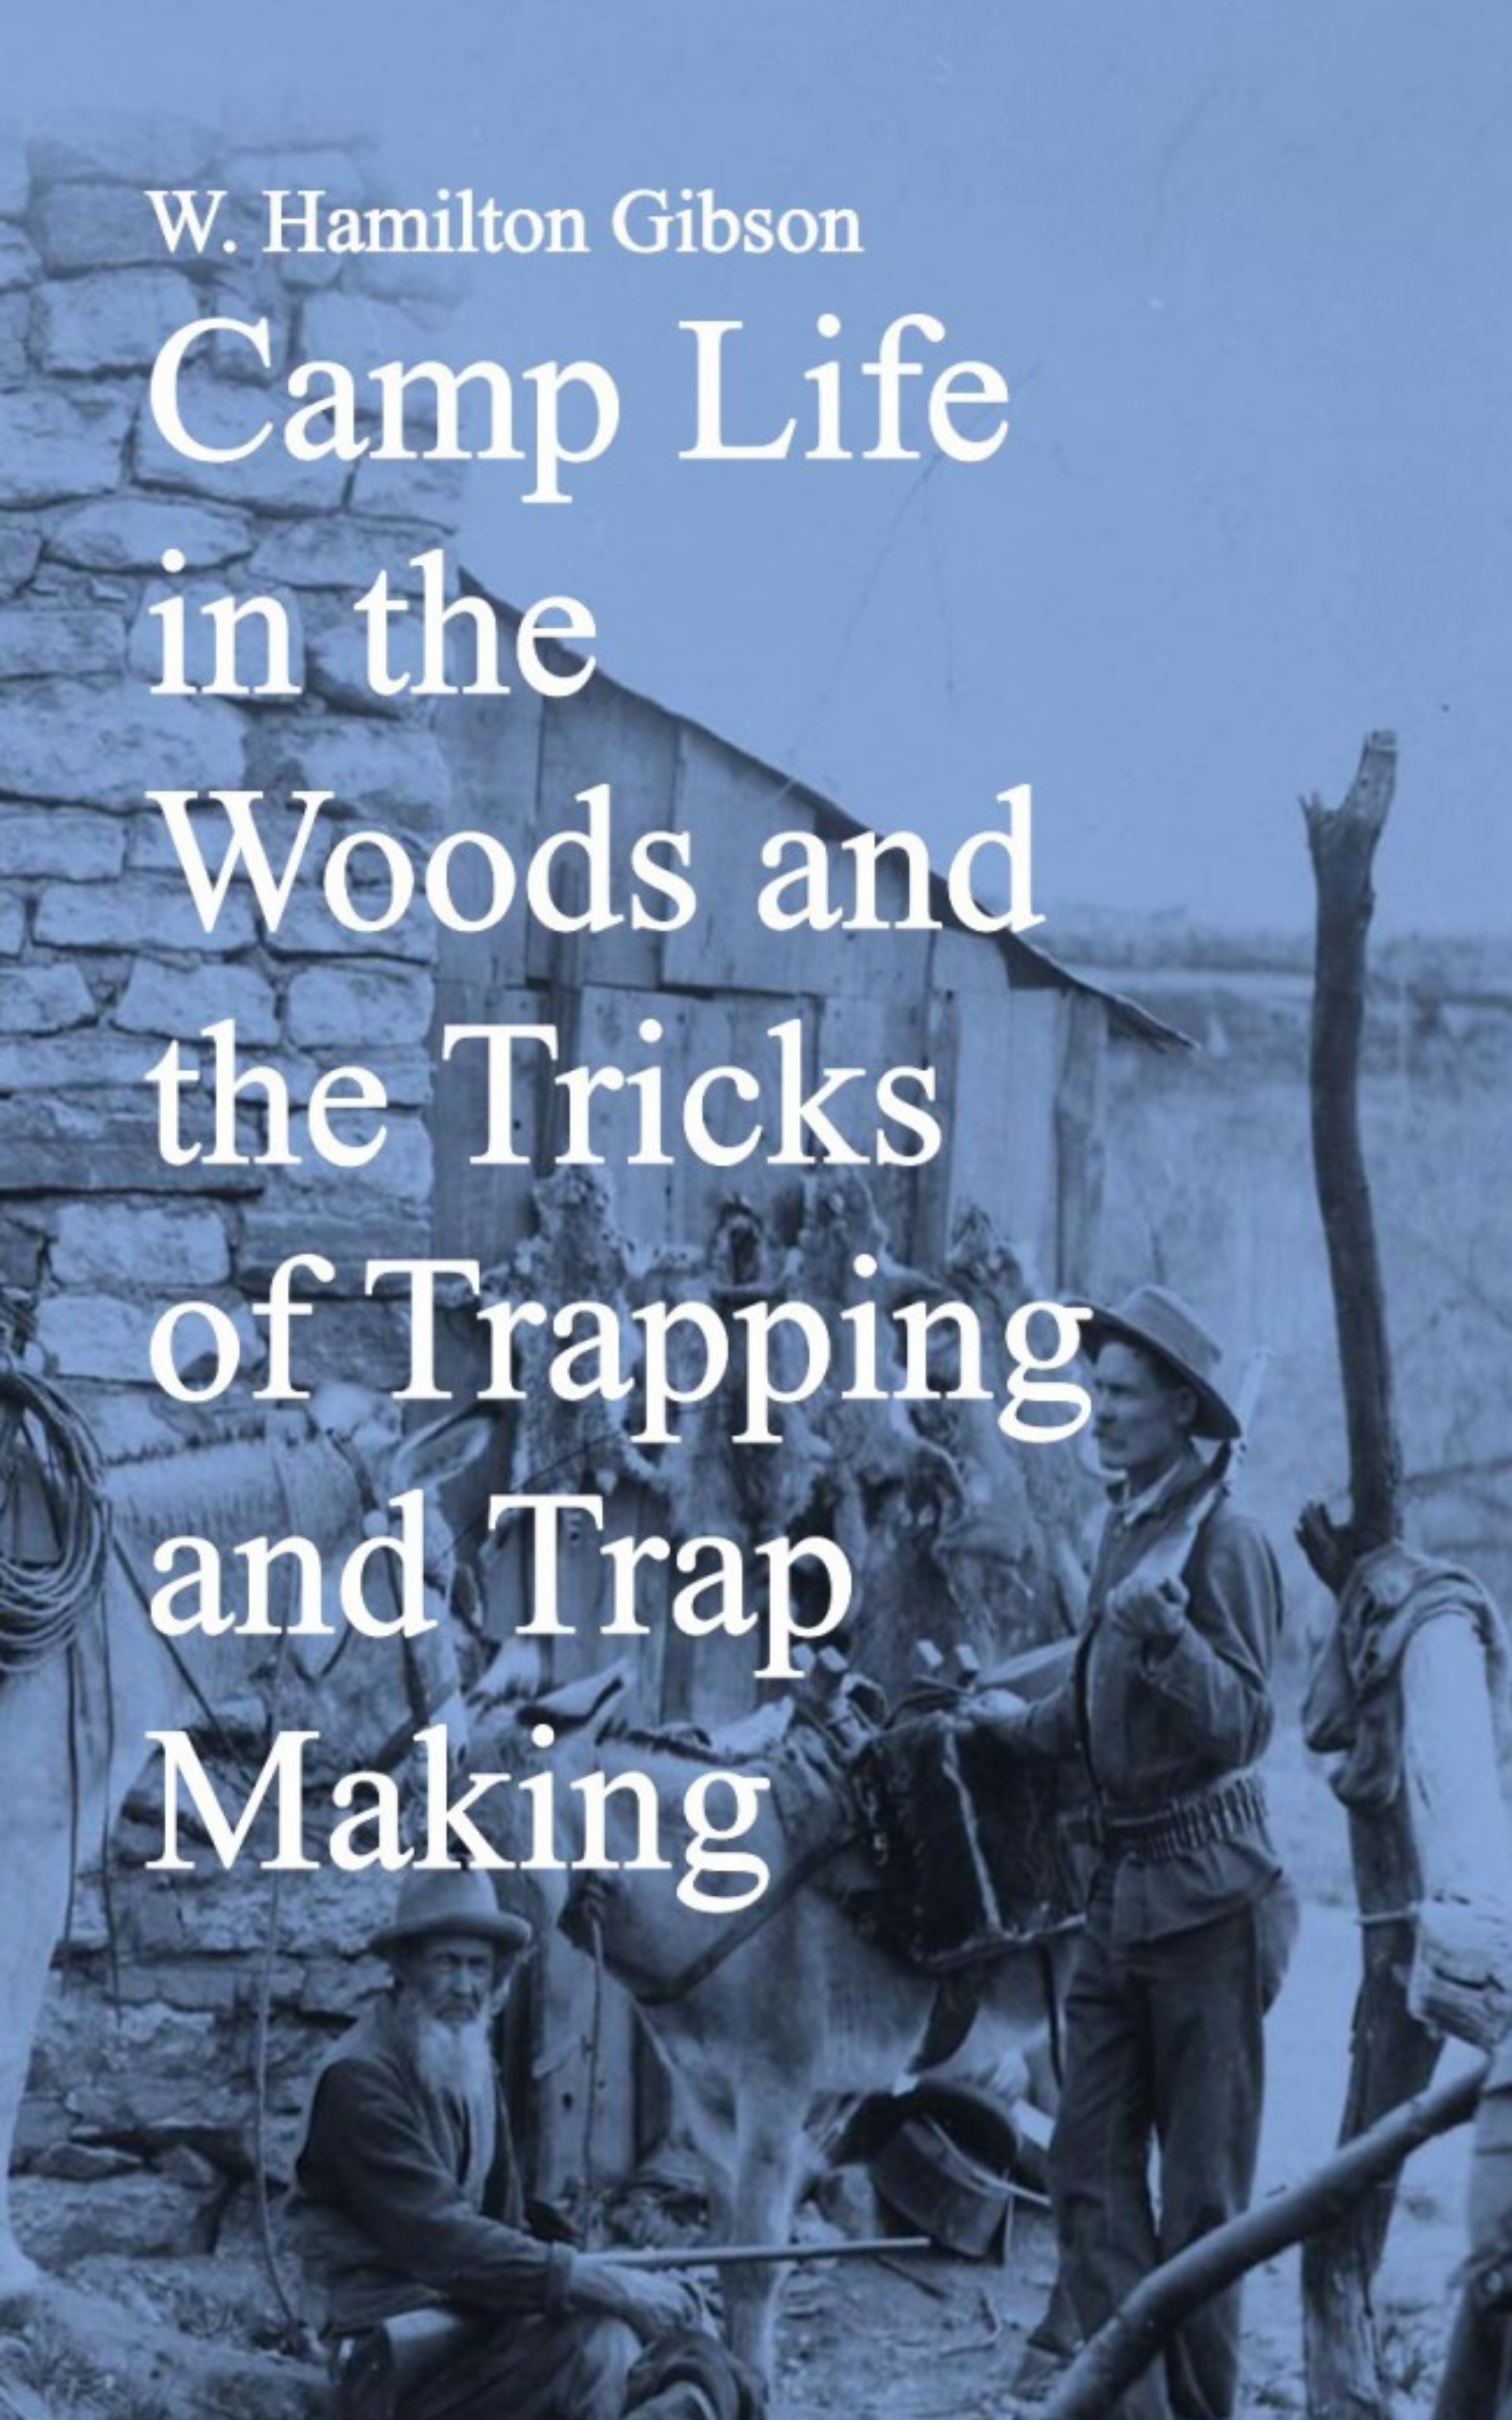 W. Hamilton Gibson Camp Life in the Woods and the Tricks of Trapping and Trap Making